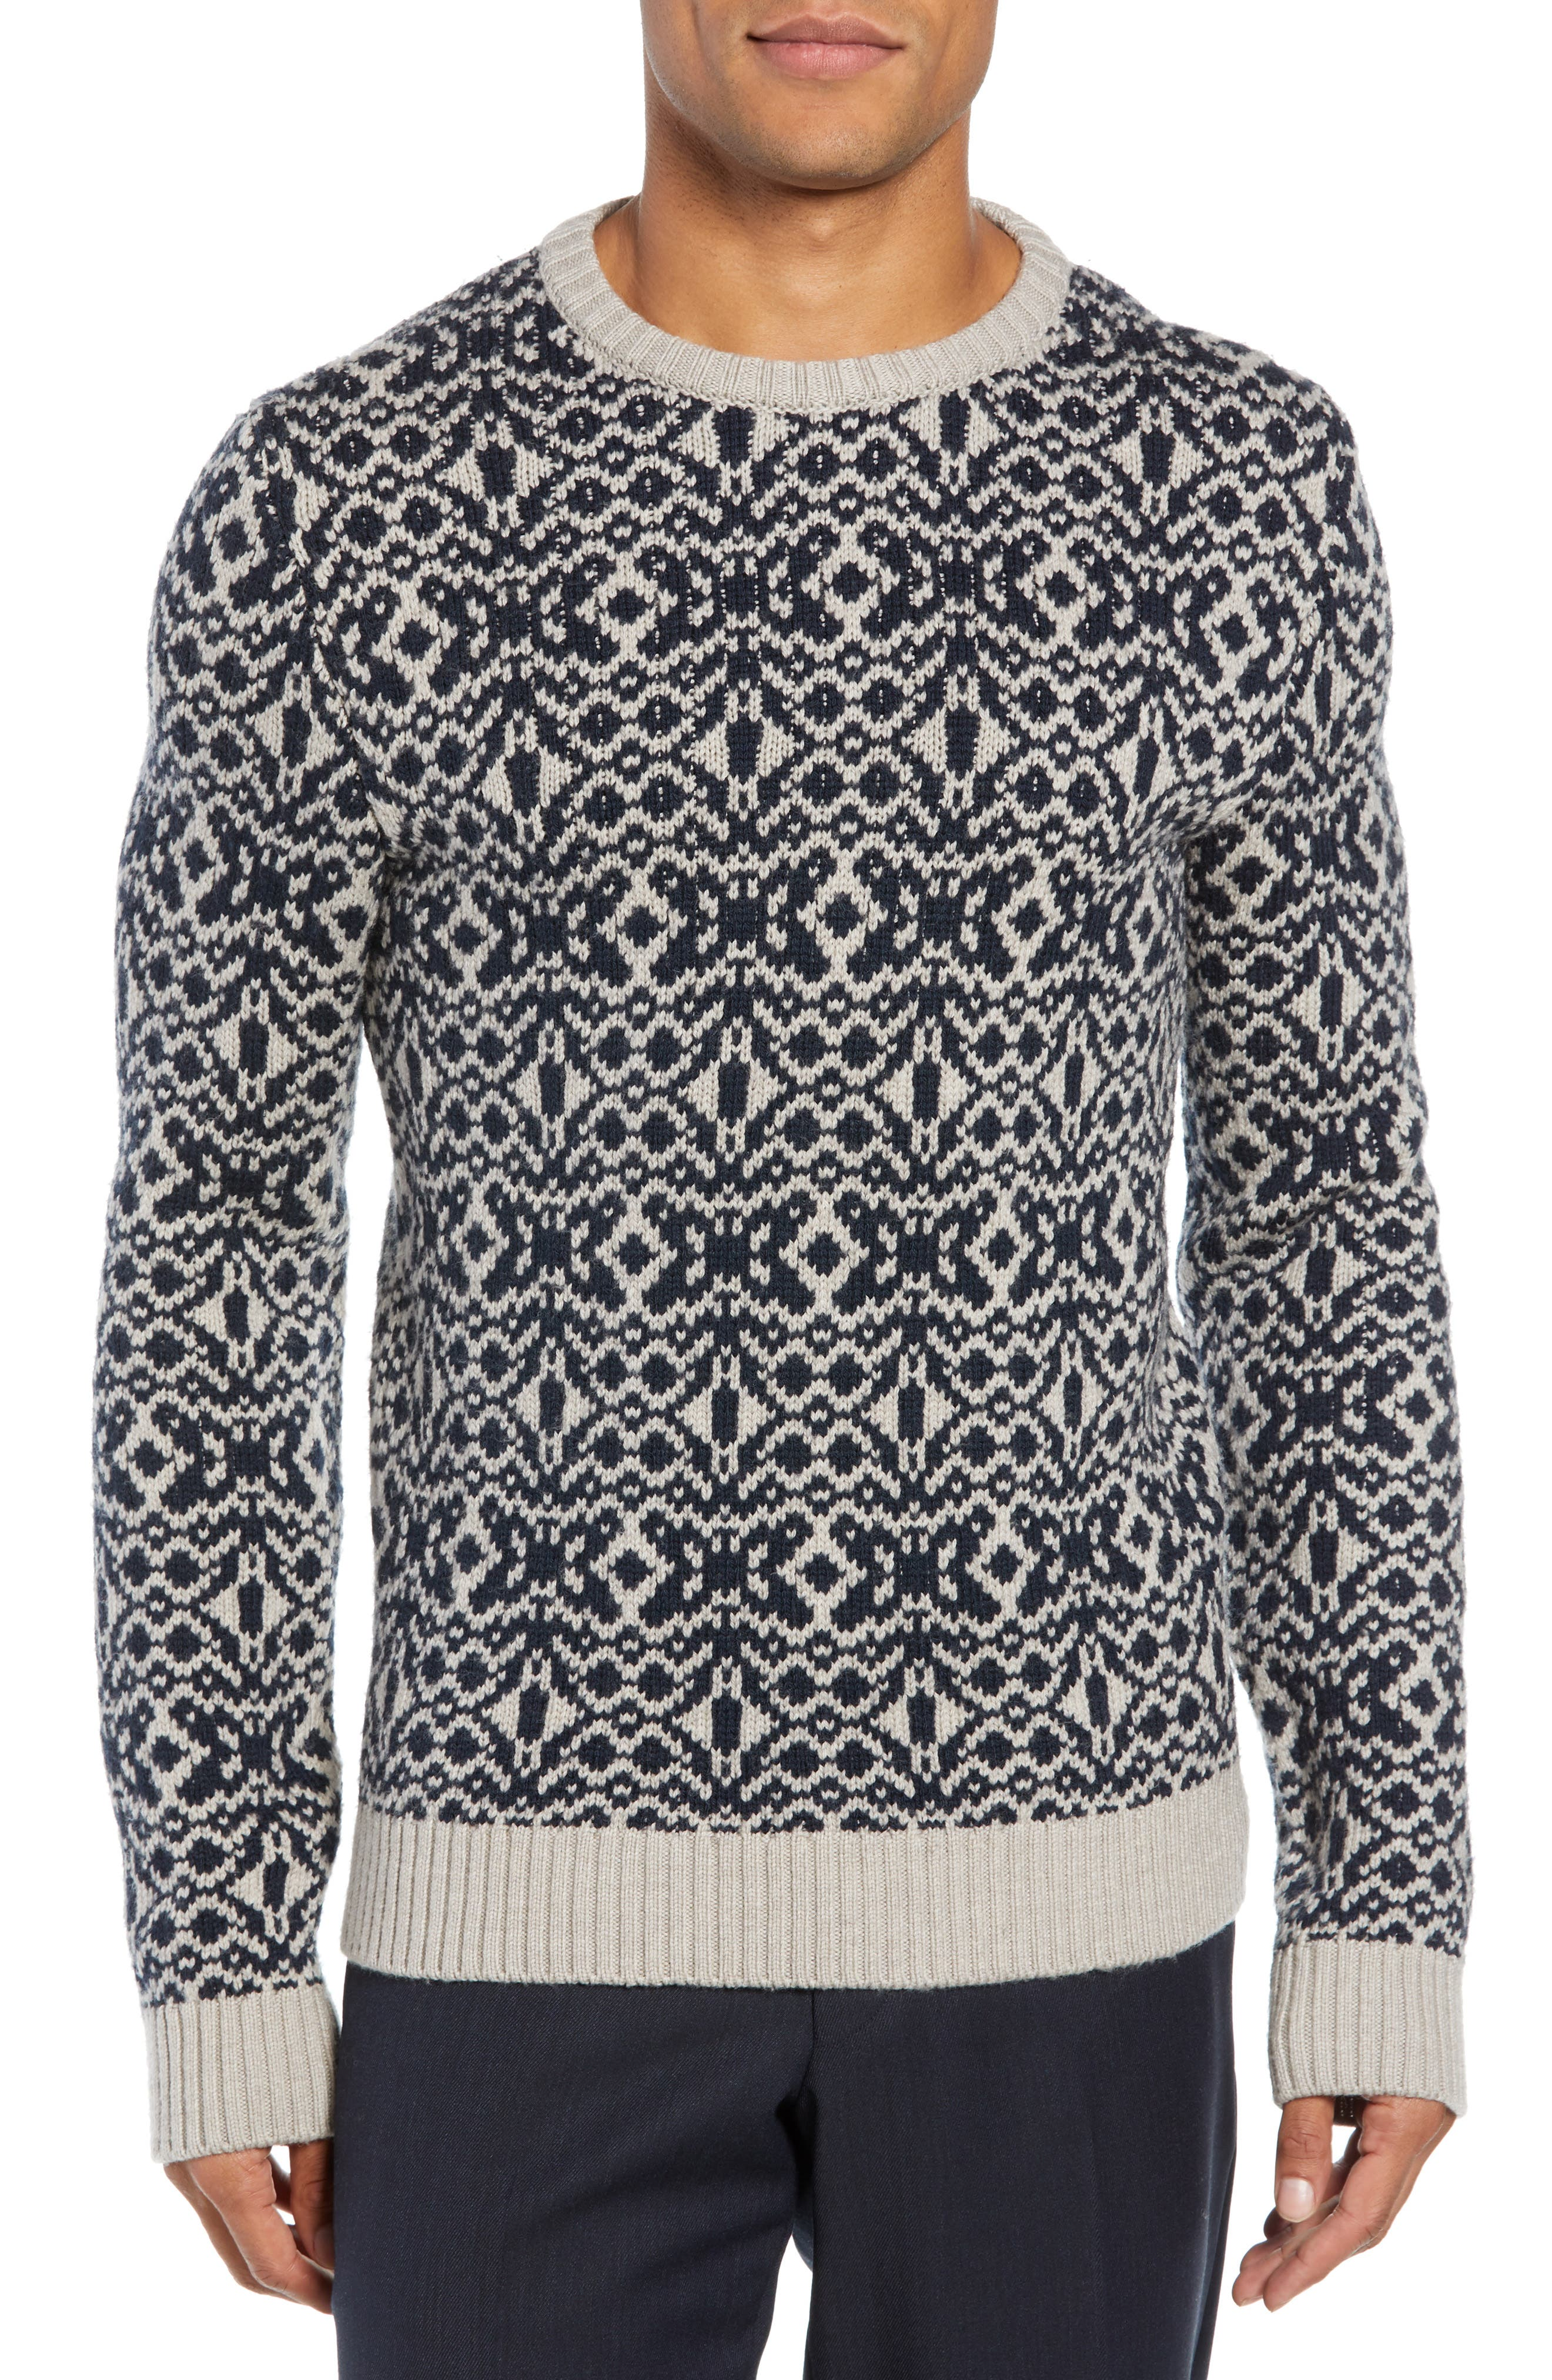 EIDOS Patterned Wool Crewneck Sweater in Stone